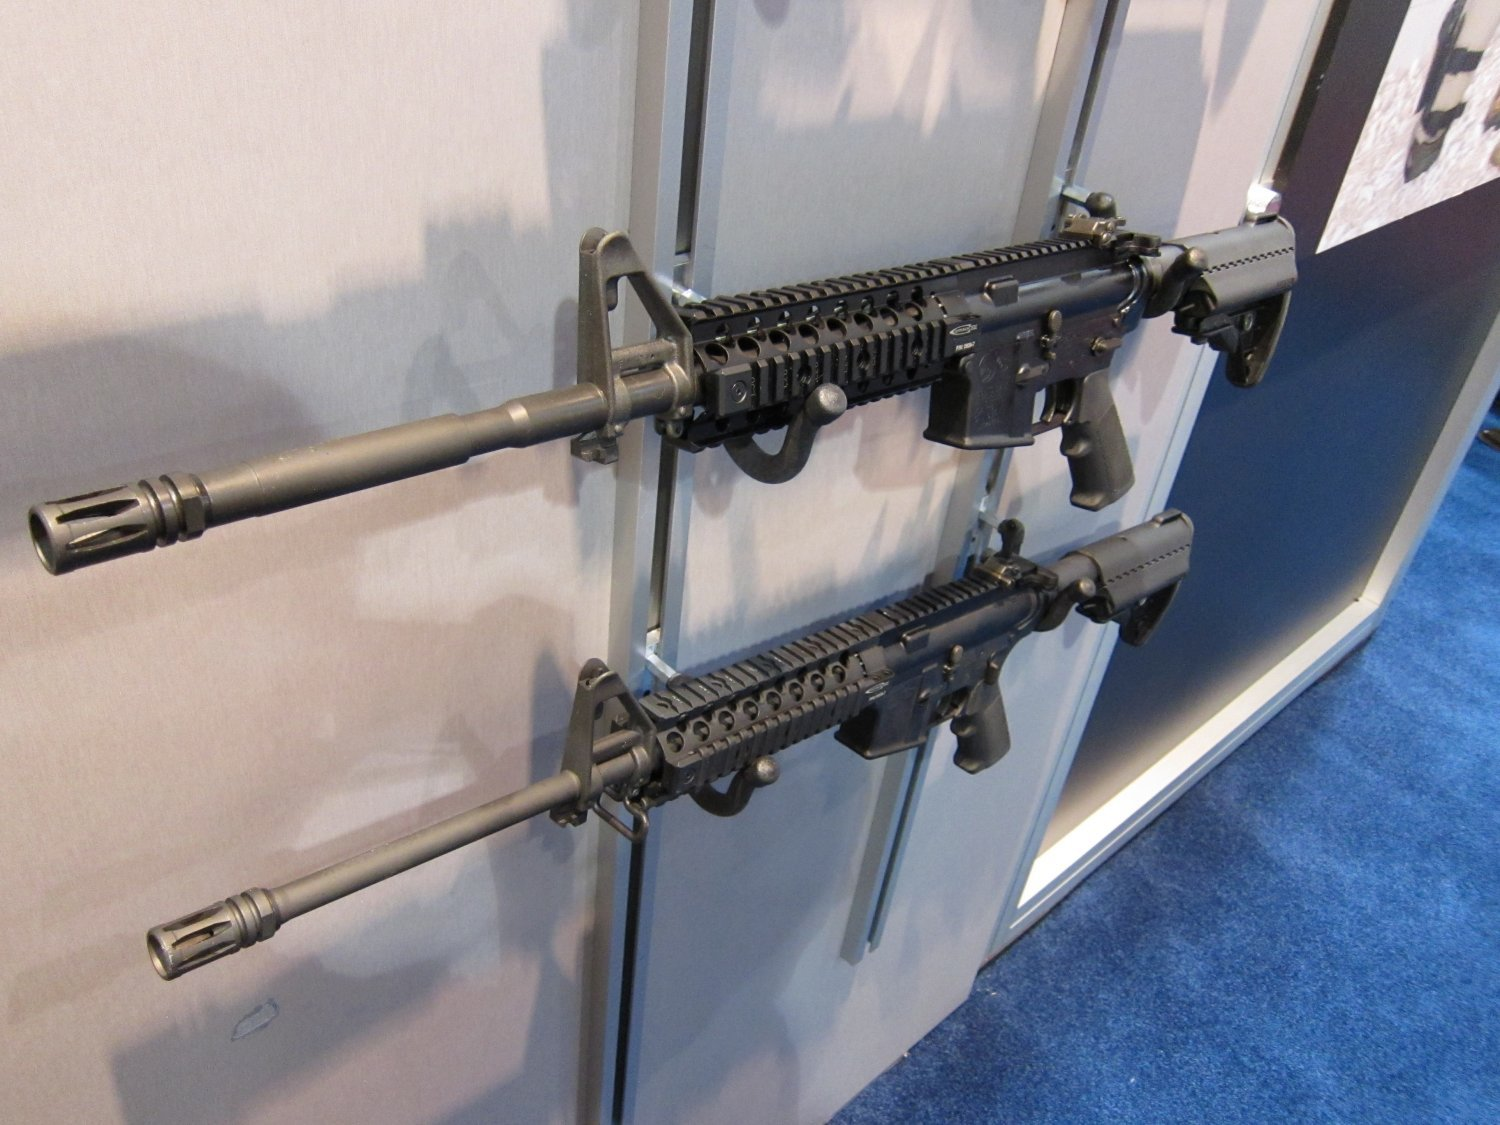 shot show 2010 colt tactical ar carbines 6 <!  :en  >Colt Defense Launches Colt Tactical Carbines/Rifles for Civilian Tactical Shooters at SHOT Show 2010: Tactical Guns Accessorized for Intensive Tactical Training<!  :  >